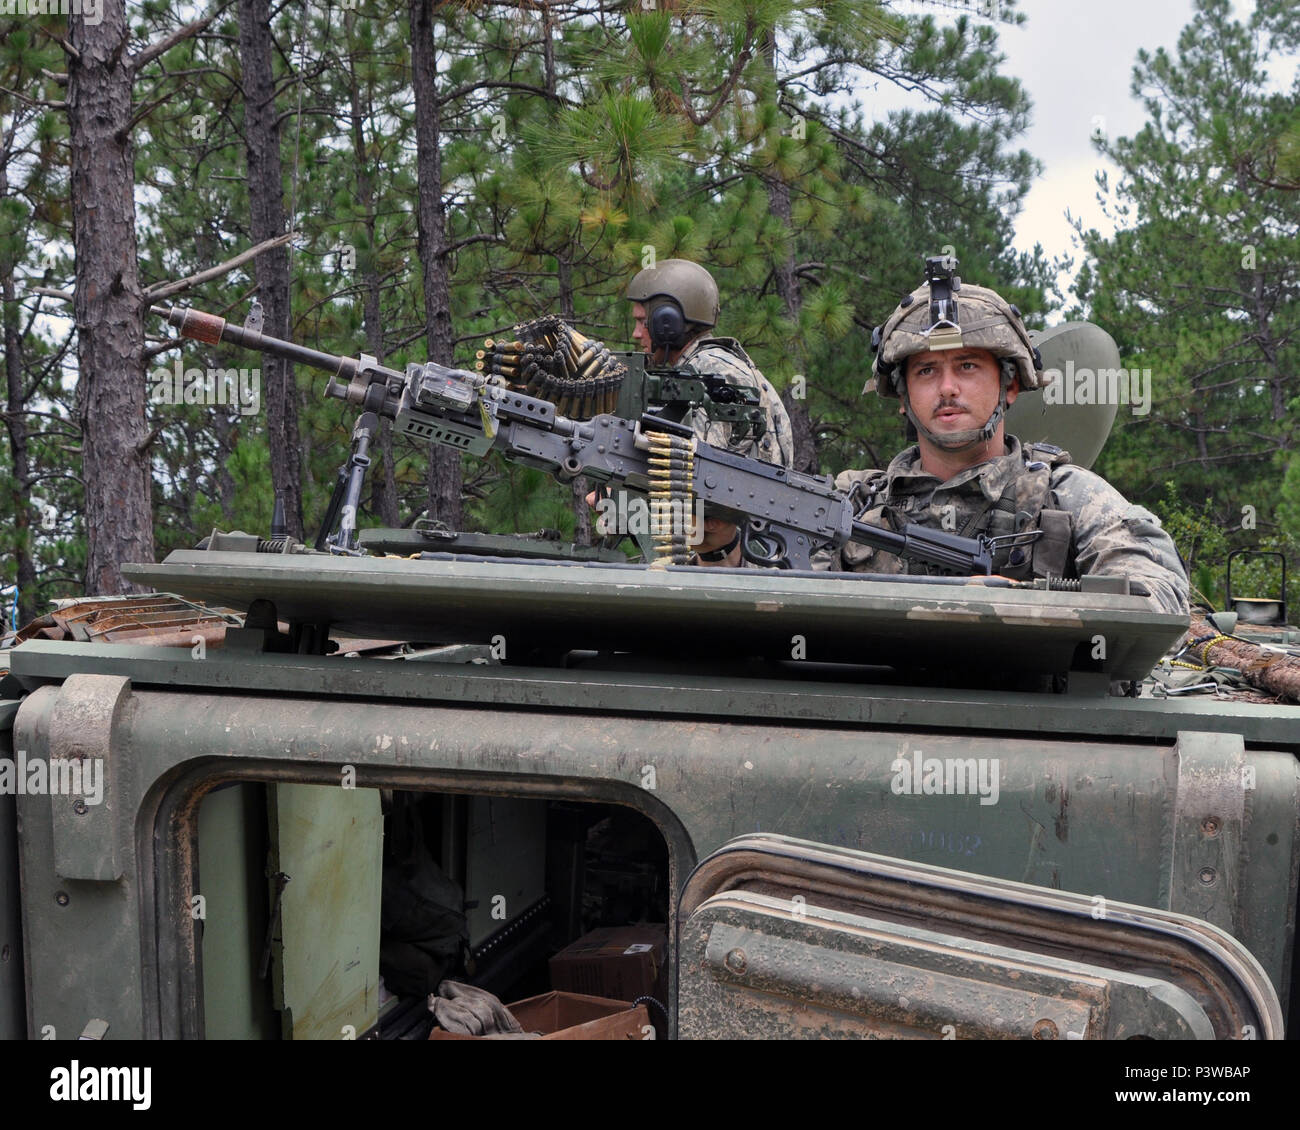 Ohio Army National Guard Sgt. Adam Fullmer, a team leader assigned to 812th Engineer Company based in Wooster, Ohio, provides security for his unit in a M113 armored personnel carrier during training at the Army's Joint Readiness Training Center, Fort Polk, Louisiana, July 27, 2016. Approximately 3,000 Soldiers from New York joined 2,000 other state Army National Guard units, active Army and Army Reserve troops as part of the 27th Infantry Brigade Combat Team's Task Force Hunter, July 9-30, 2016.  The Soldiers are honing their skills and practicing integrating combat operations ranging from in Stock Photo